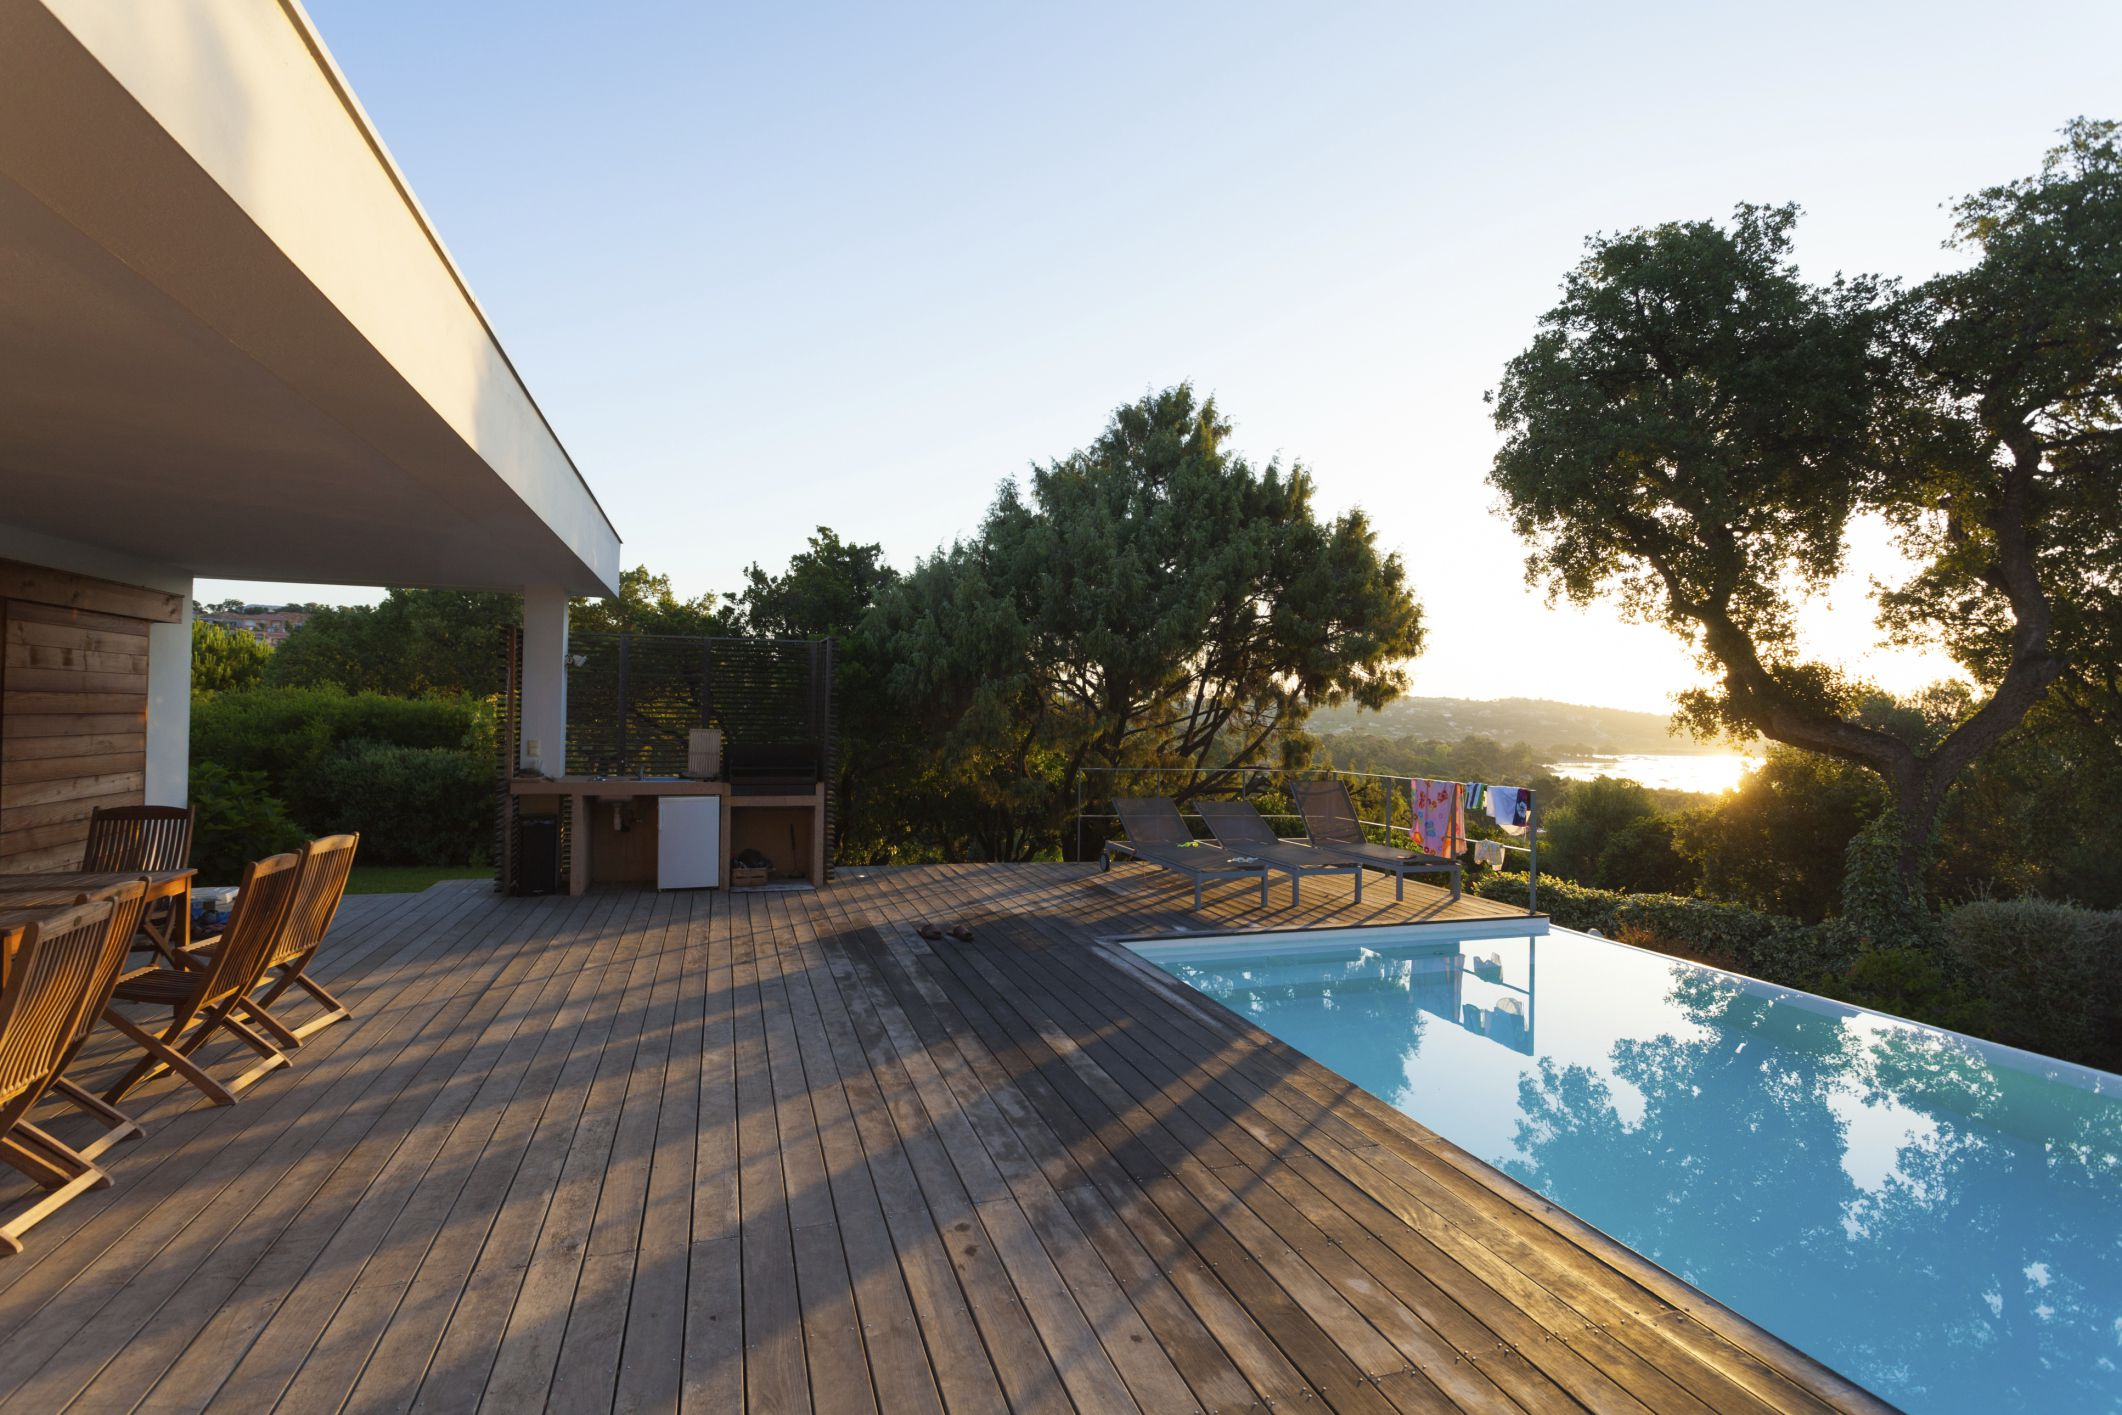 9 Outdoor Deck Designs Types And Locations